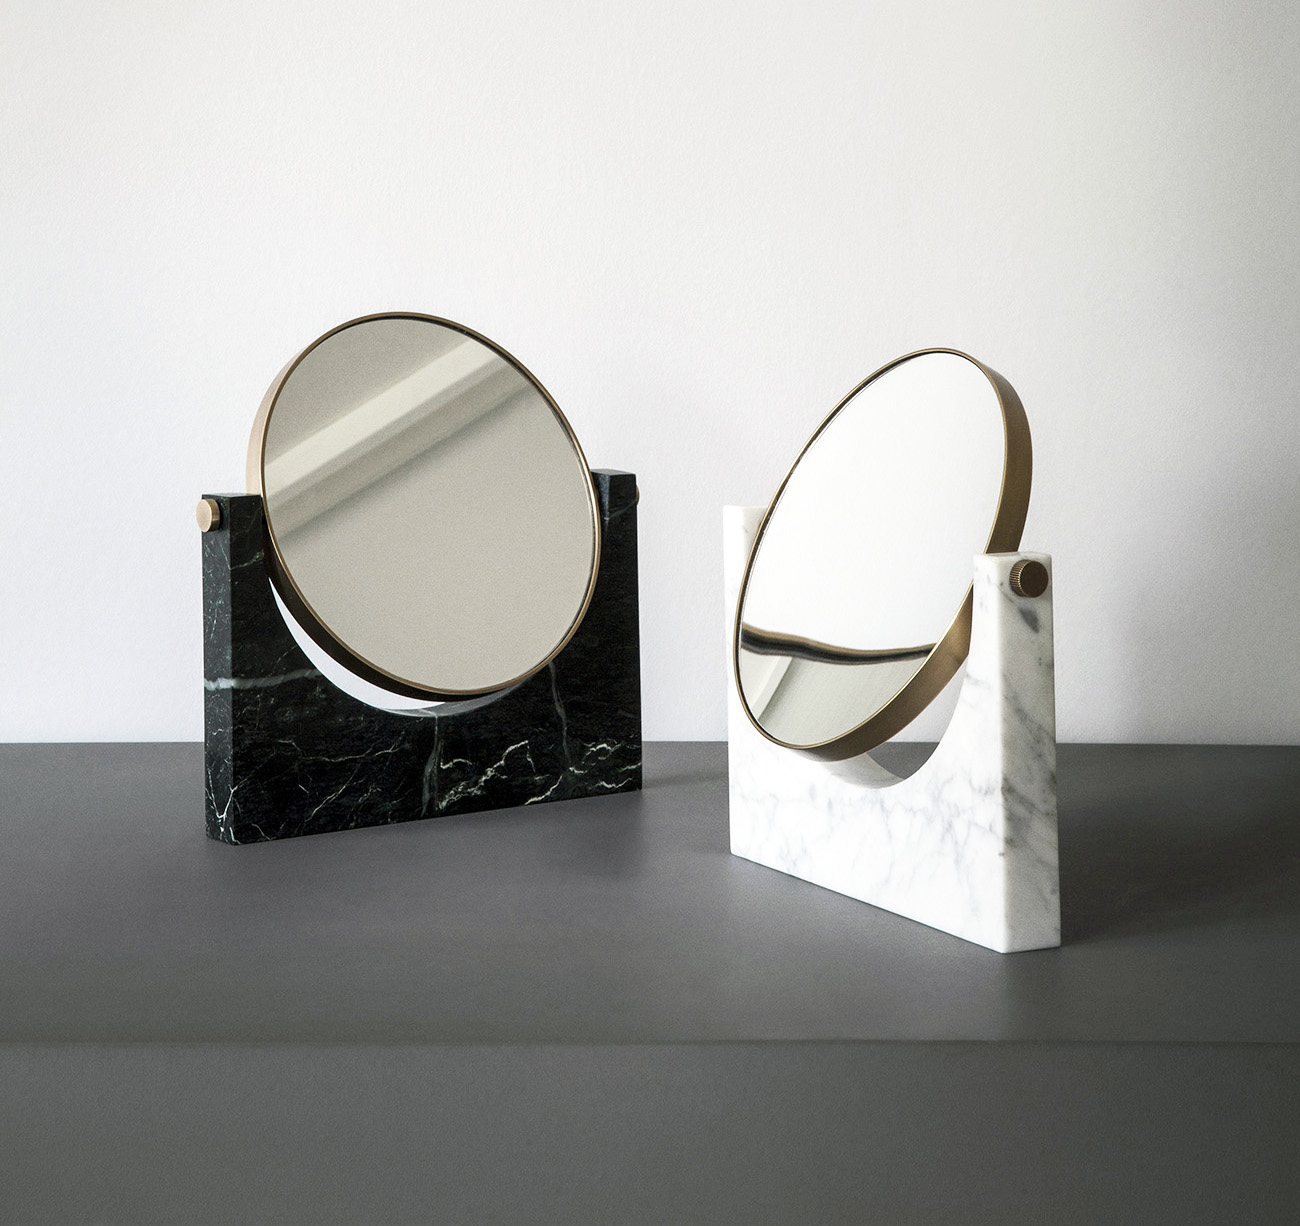 Studio pepe mirrors in marble and brass